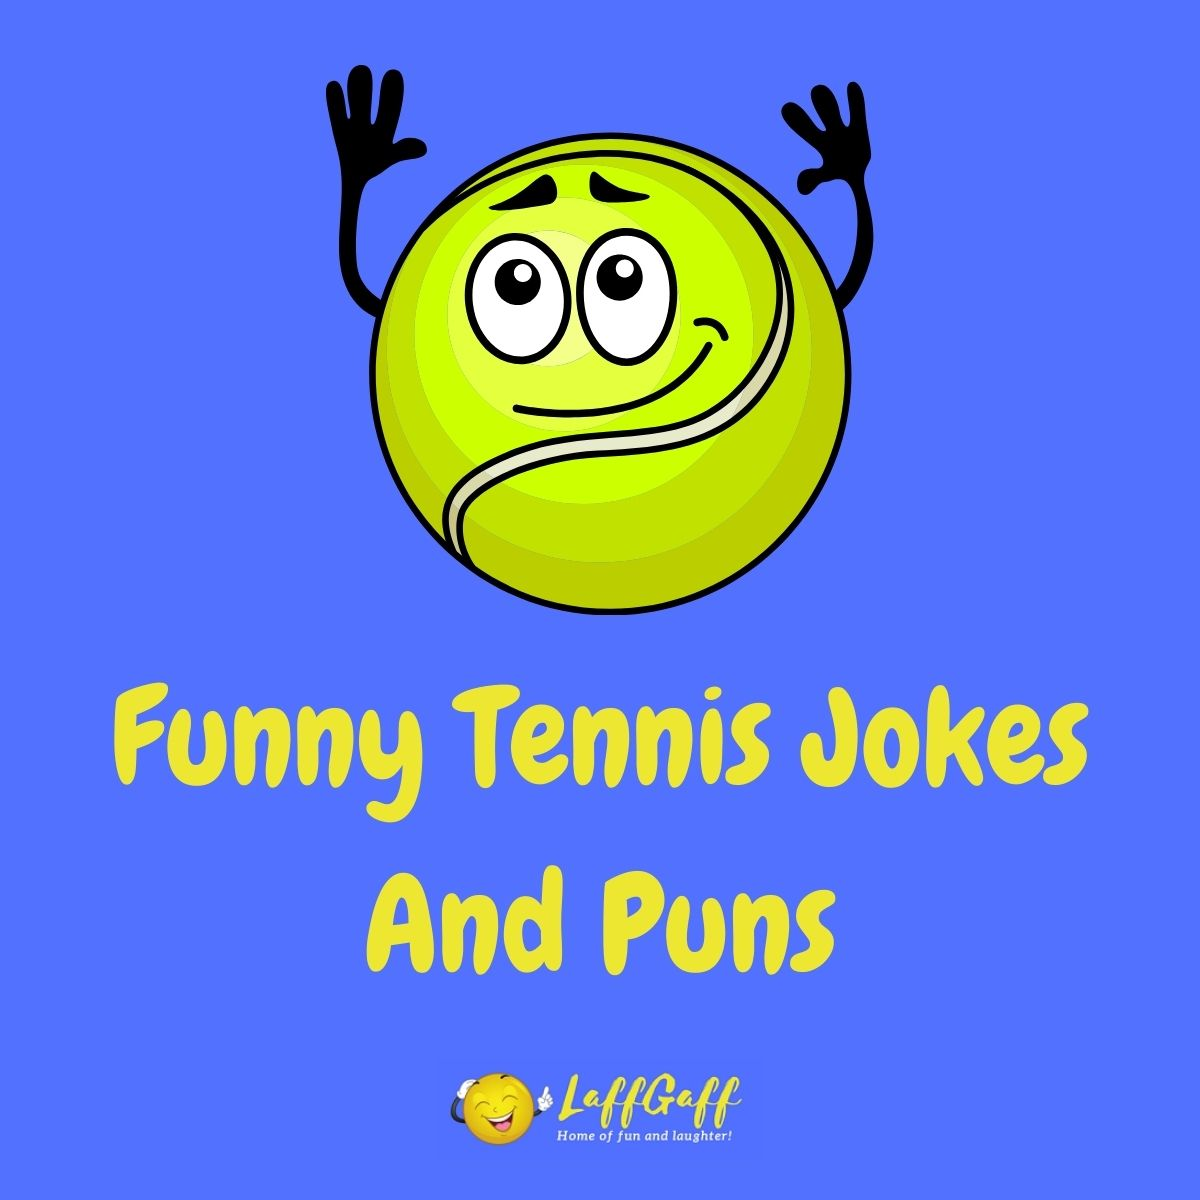 Featured image for a page of funny tennis jokes and puns.